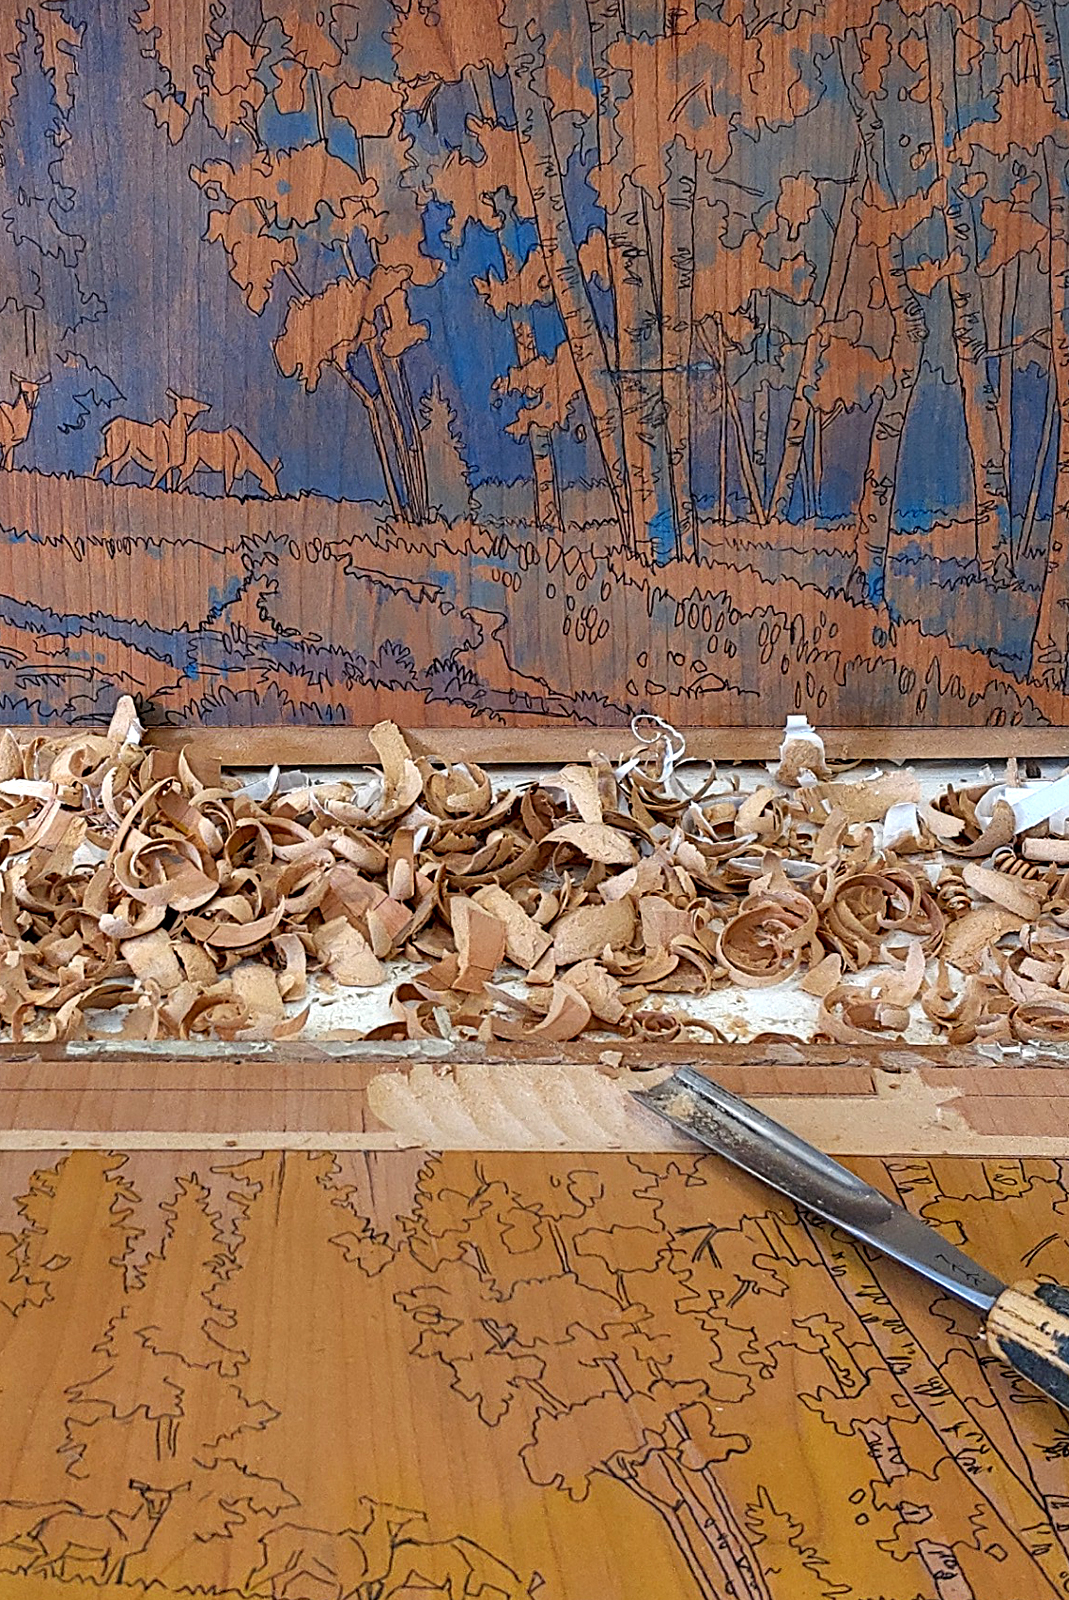 The carve process on a woodblock